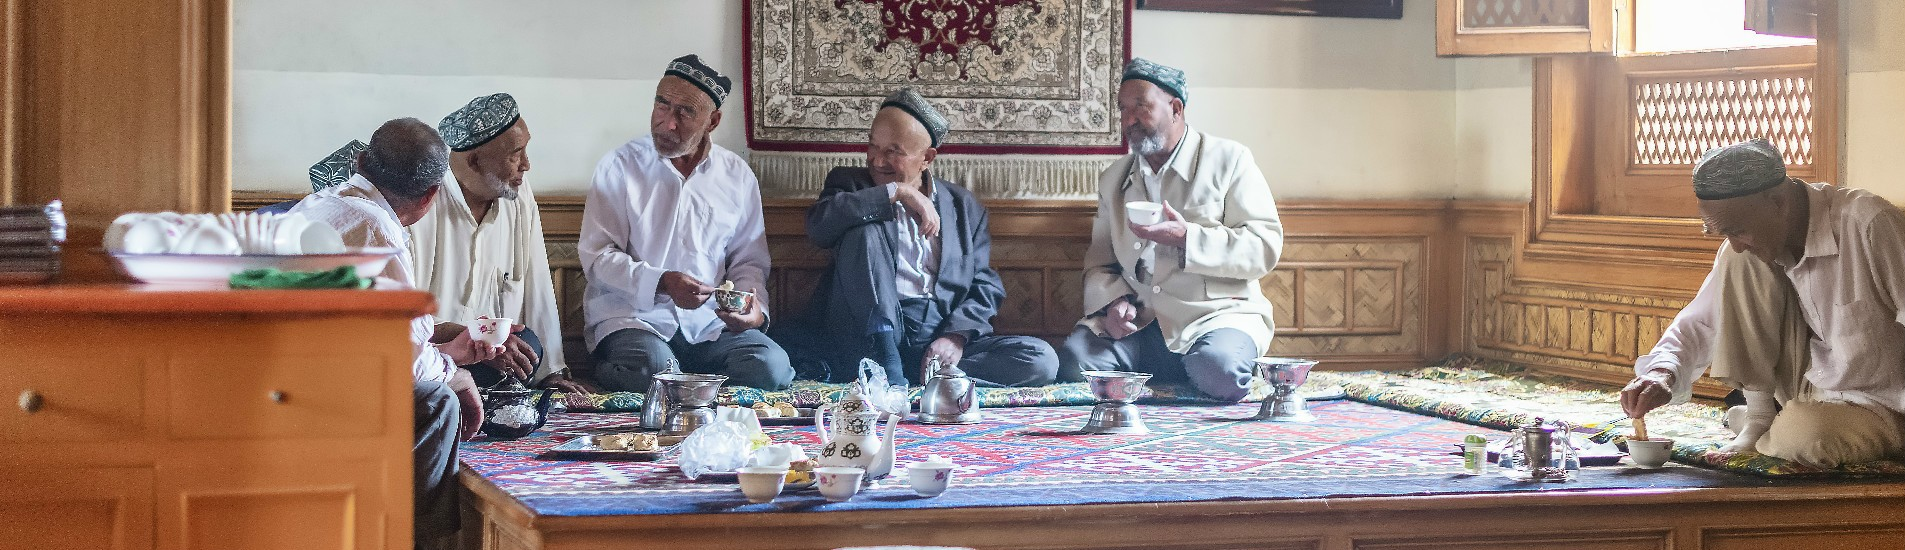 Uyghur tea house